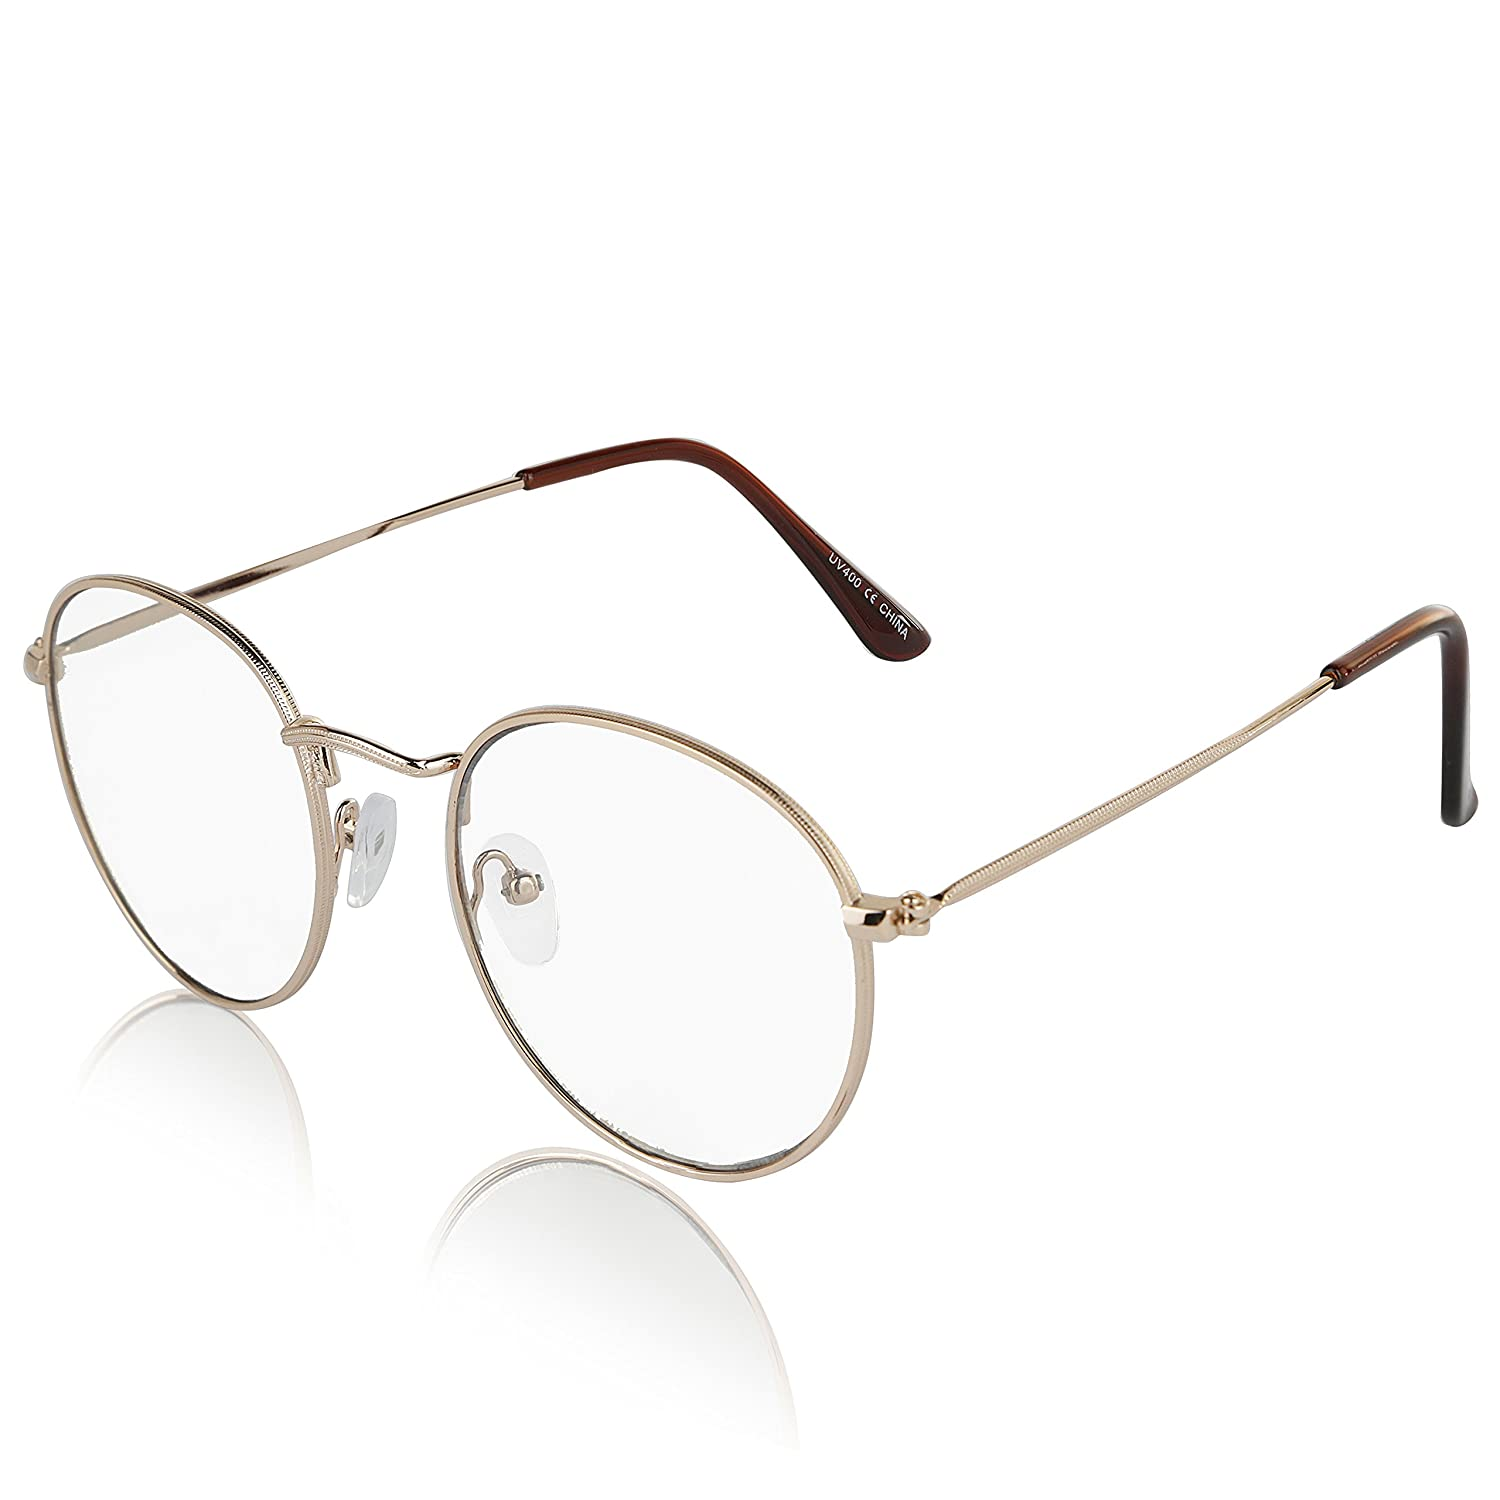 8b74a4ee99c Amazon.com  Non Prescription Retro Fake Clear Lens Gold Metal Frame  Eyeglasses Woman UV400  Clothing